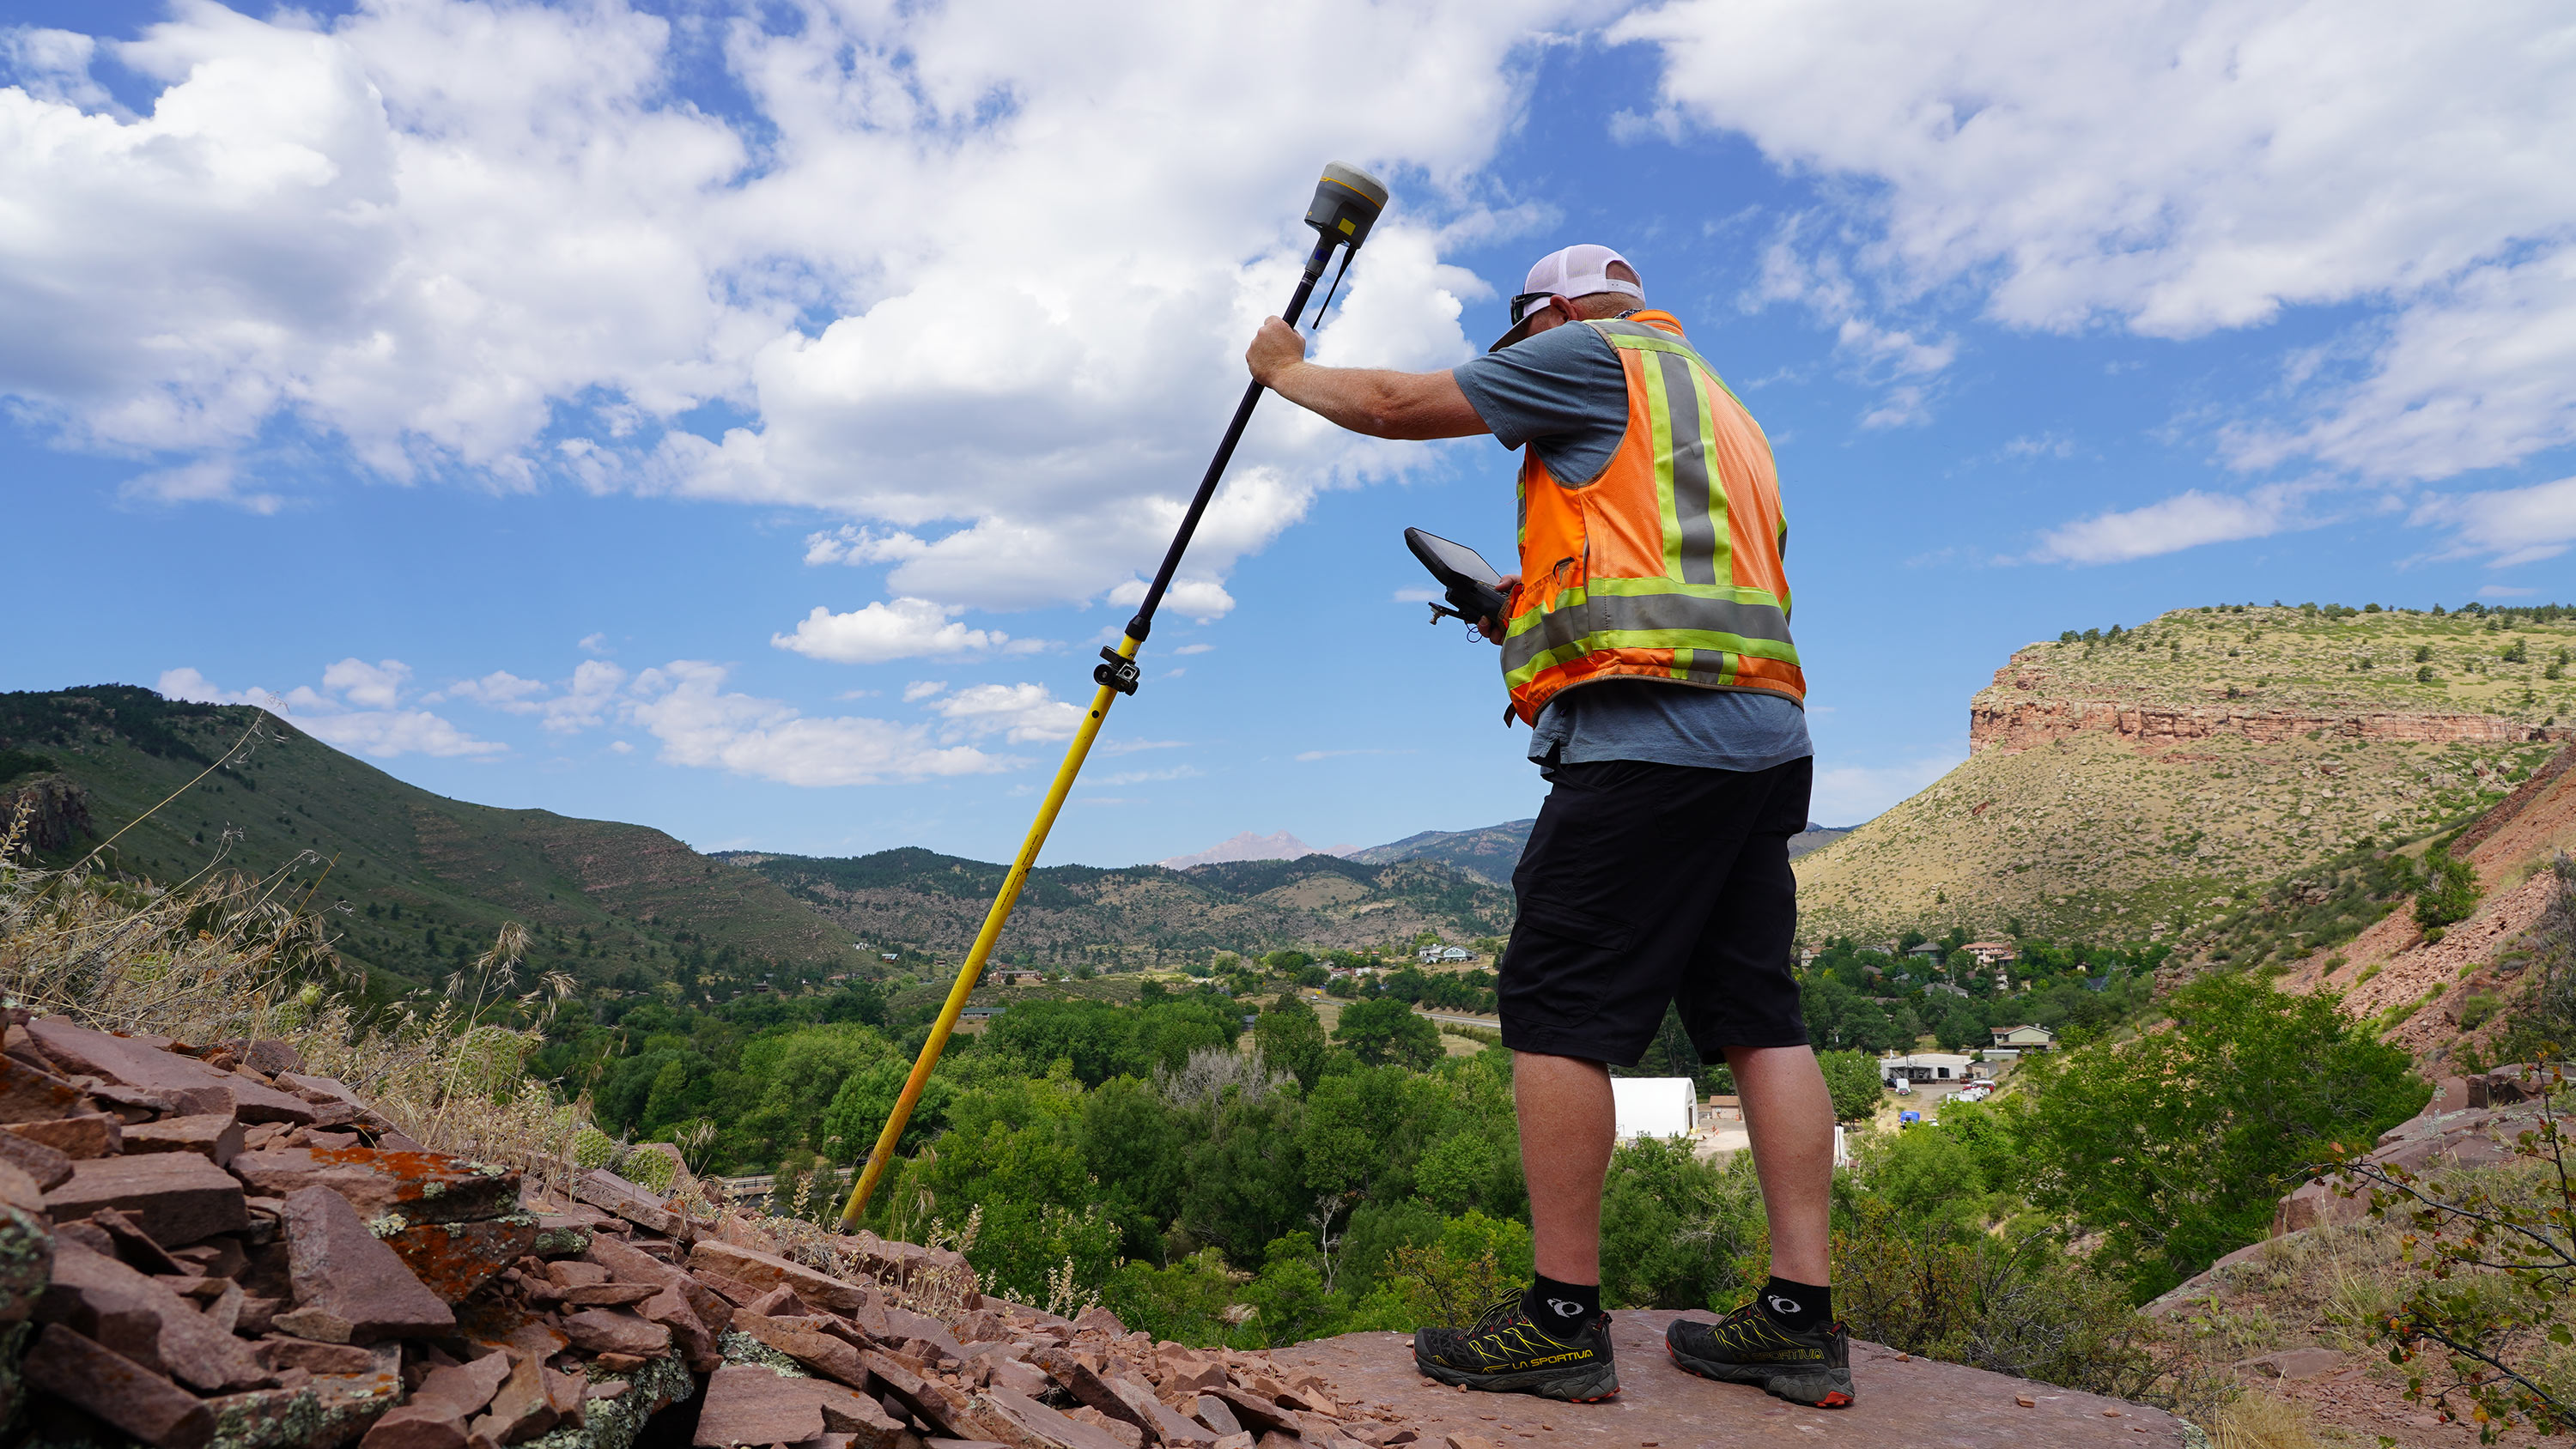 Surveyor using a tilted GNSS rover at the edge of a steep embankment